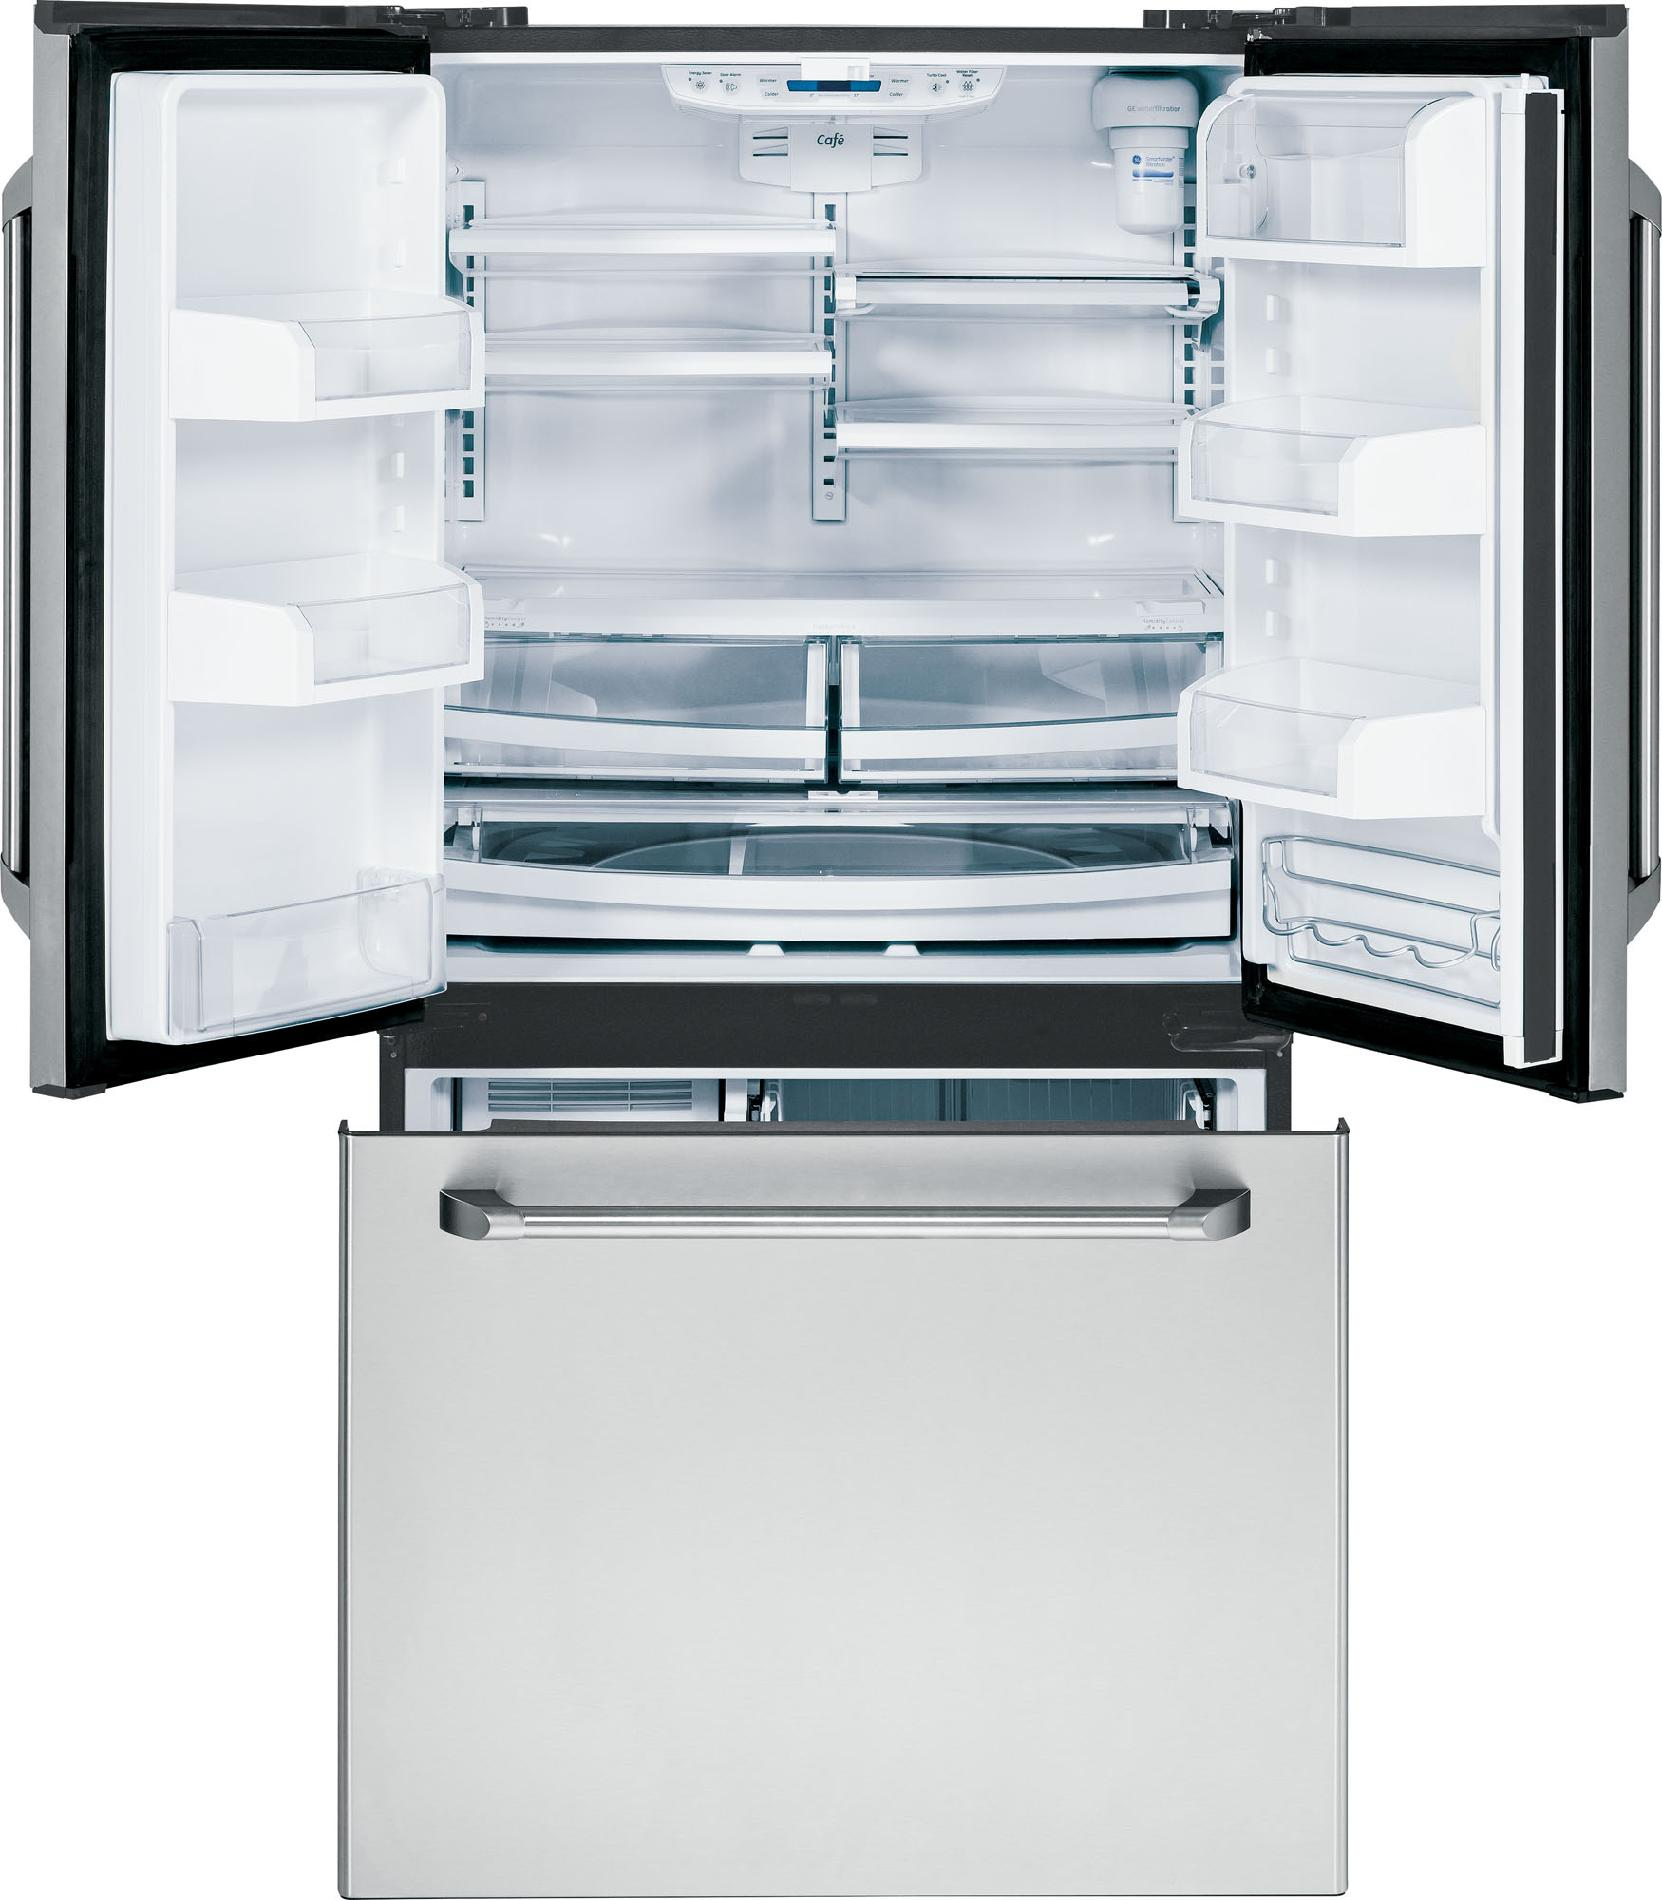 GE Café 20.7 Cu. Ft. Counter-Depth French-Door Refrigerator